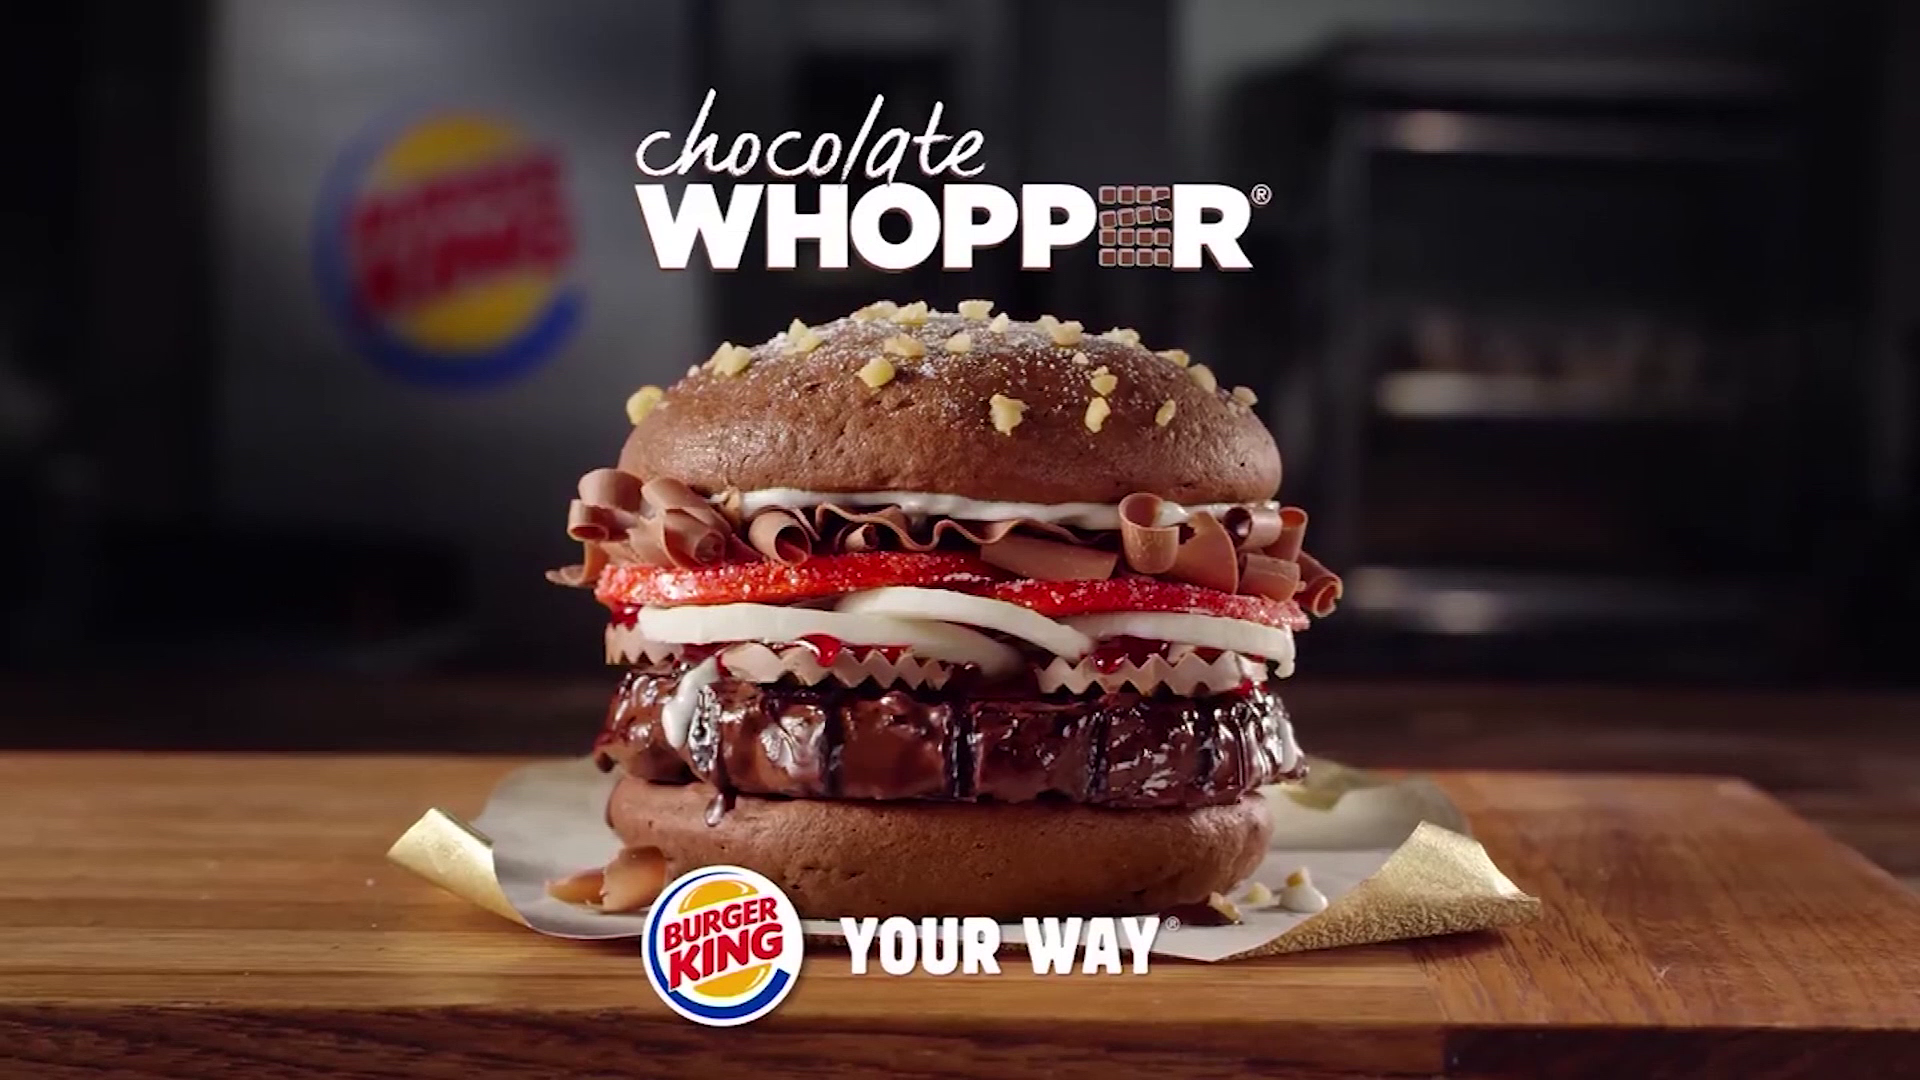 Chocolate Whopper April Fools Day Burger King